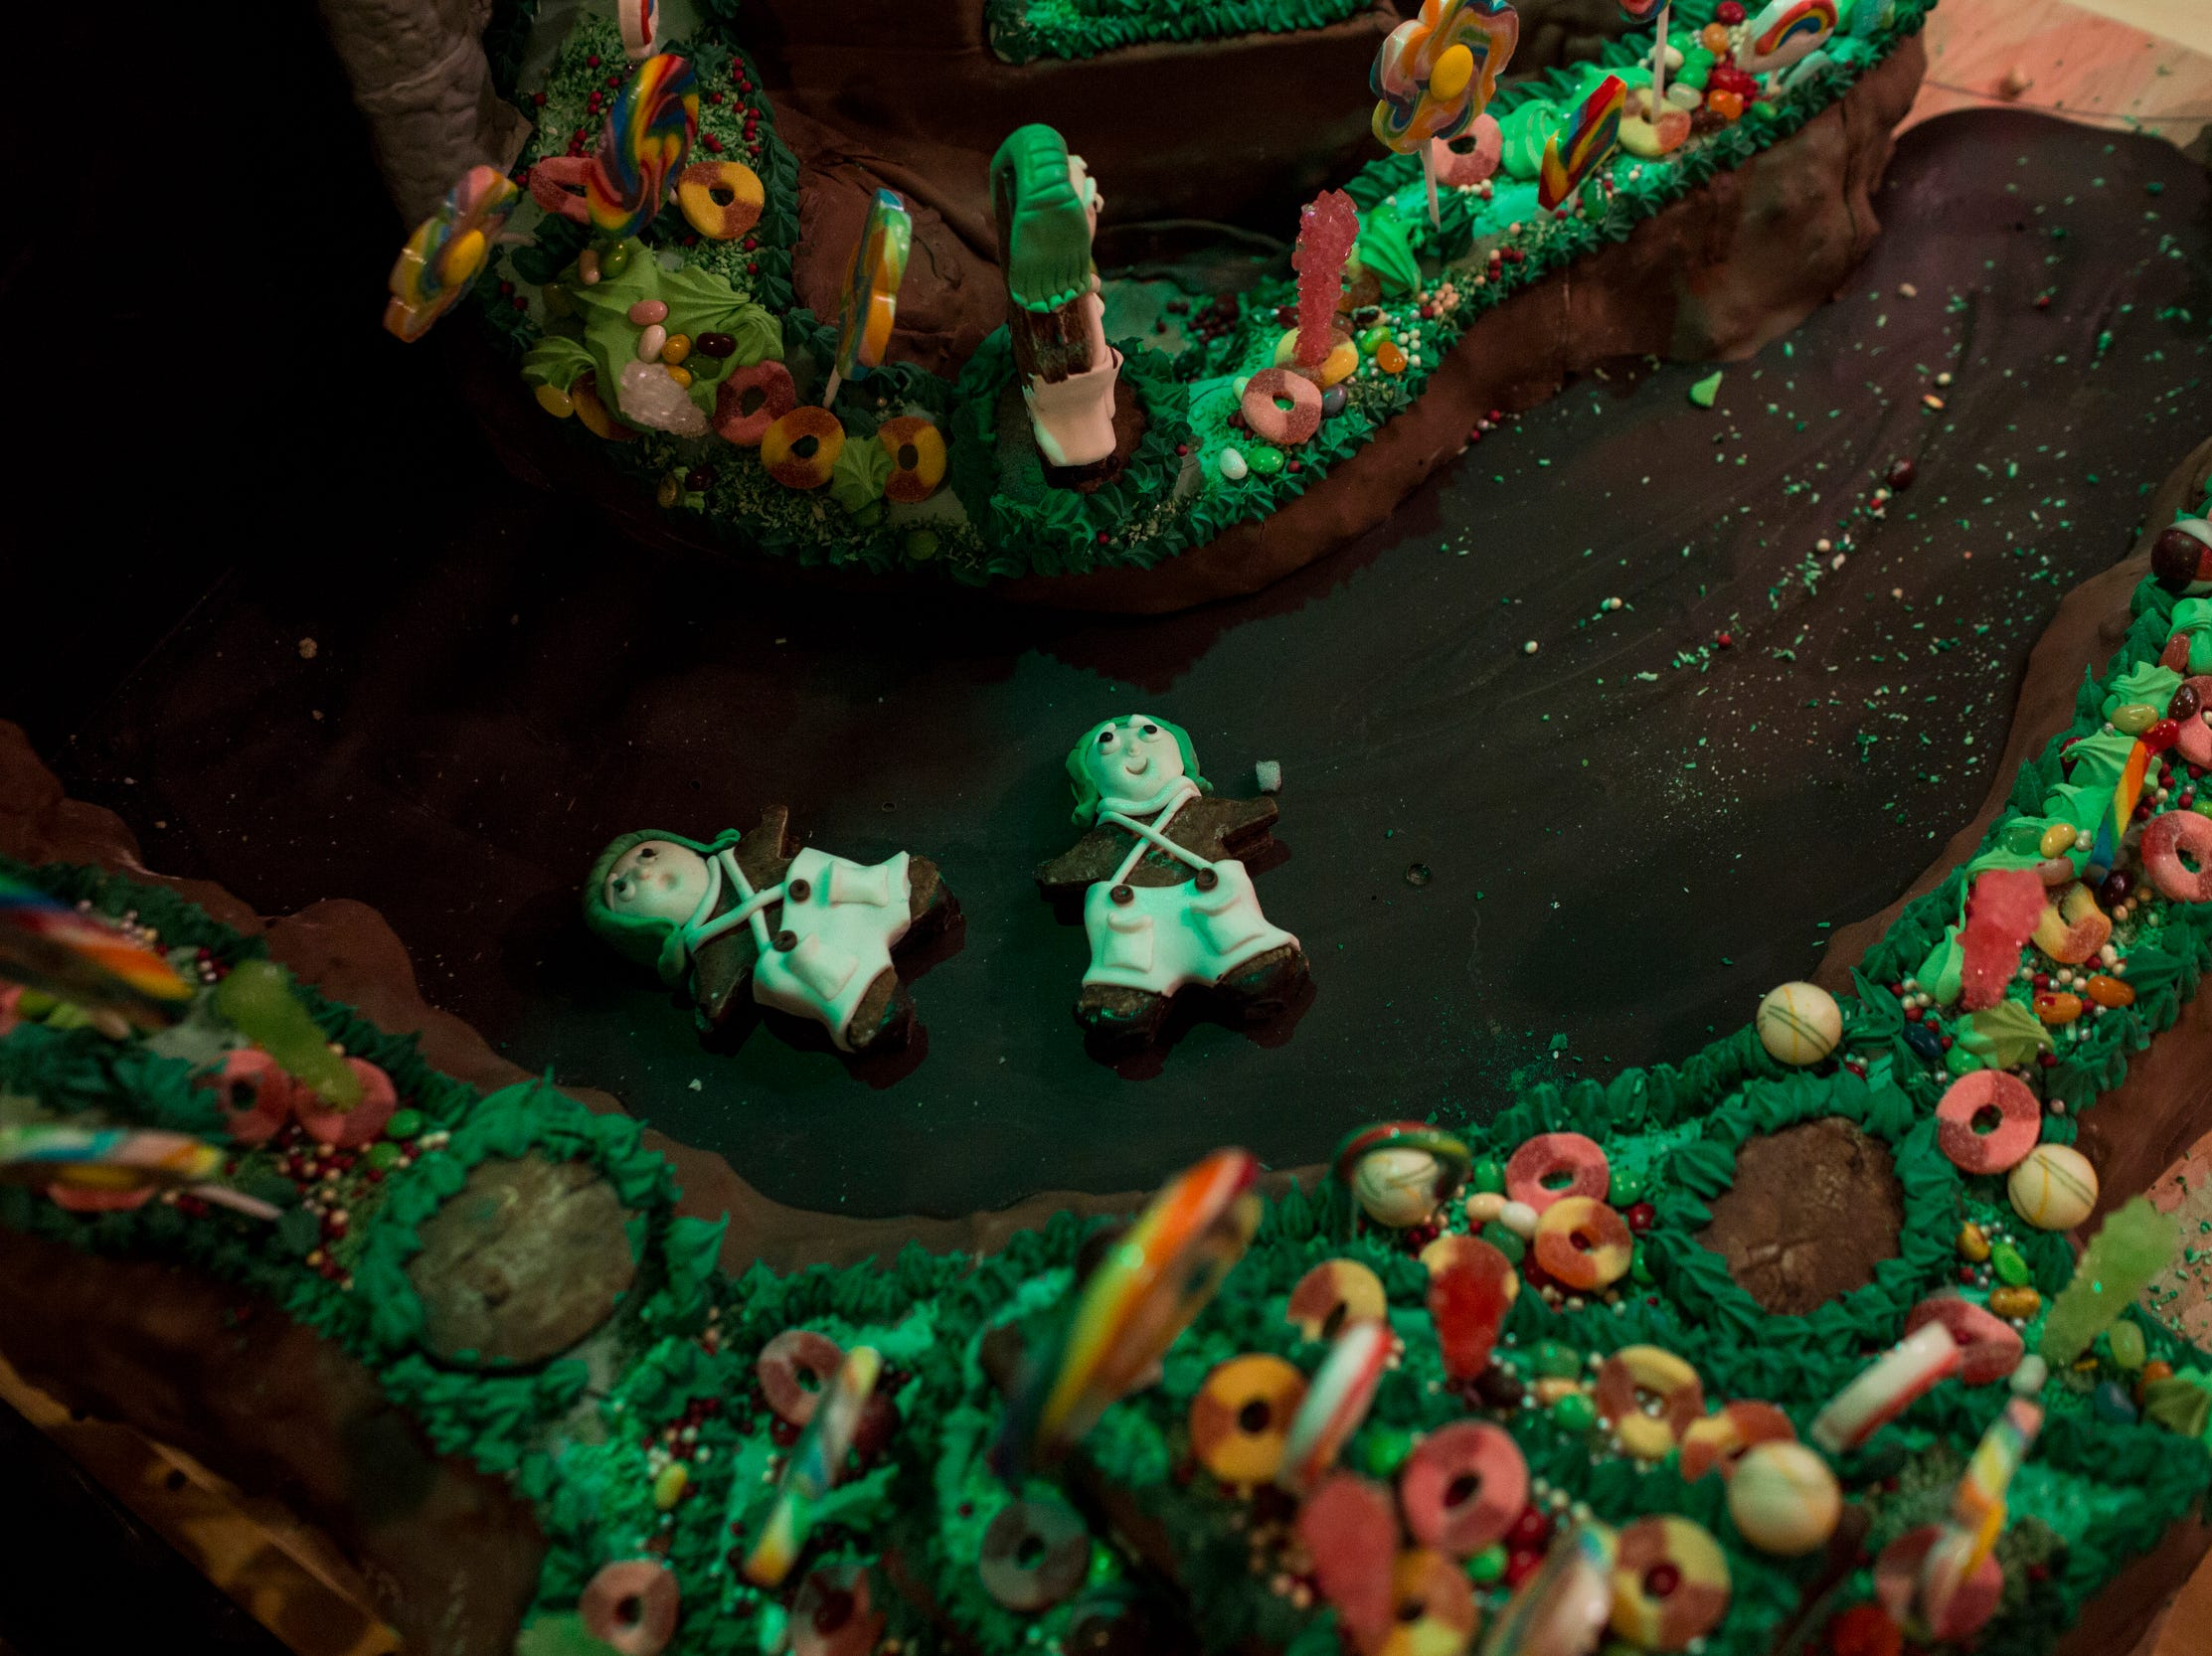 November 20 2018 - Details from the holiday gingerbread display at the Peabody Hotel. Chef Konrad Spitzbart does an elaborate holiday Gingerbread display every year that work is started on months in advance.